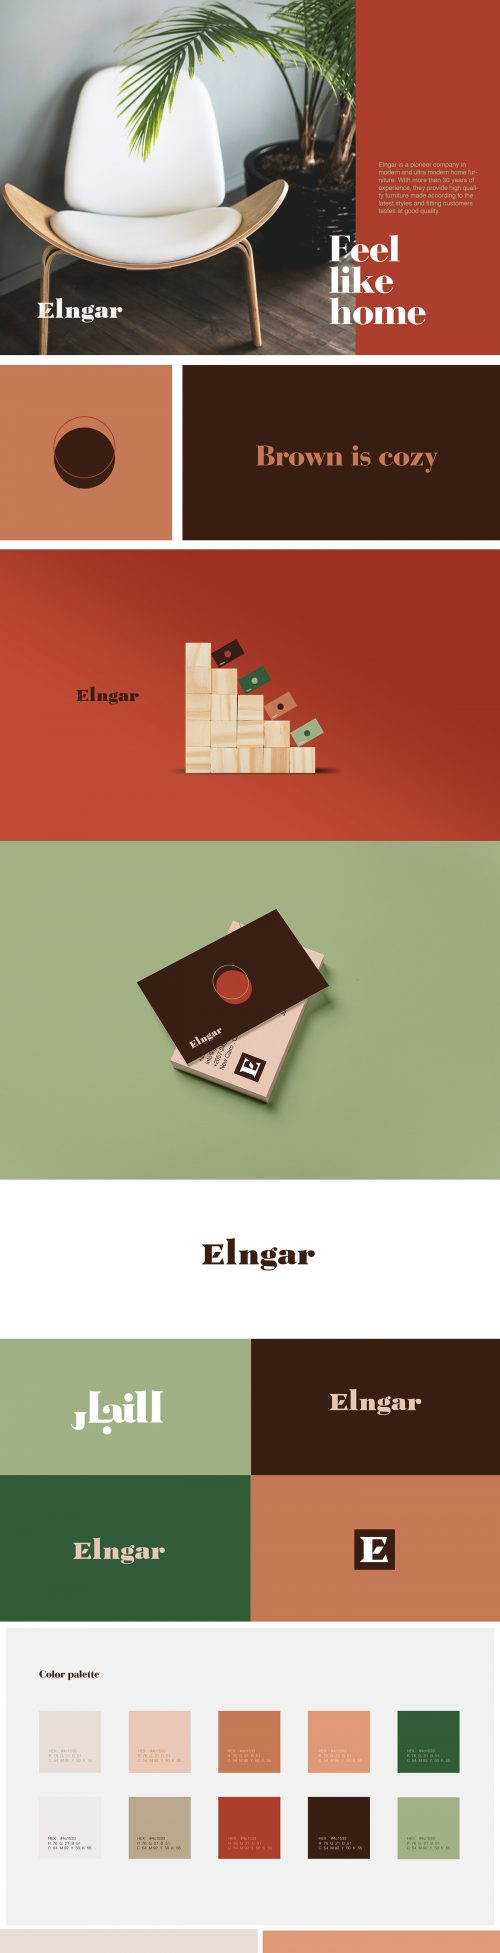 Elngar Furniture Brand Identity Branding Layout Design